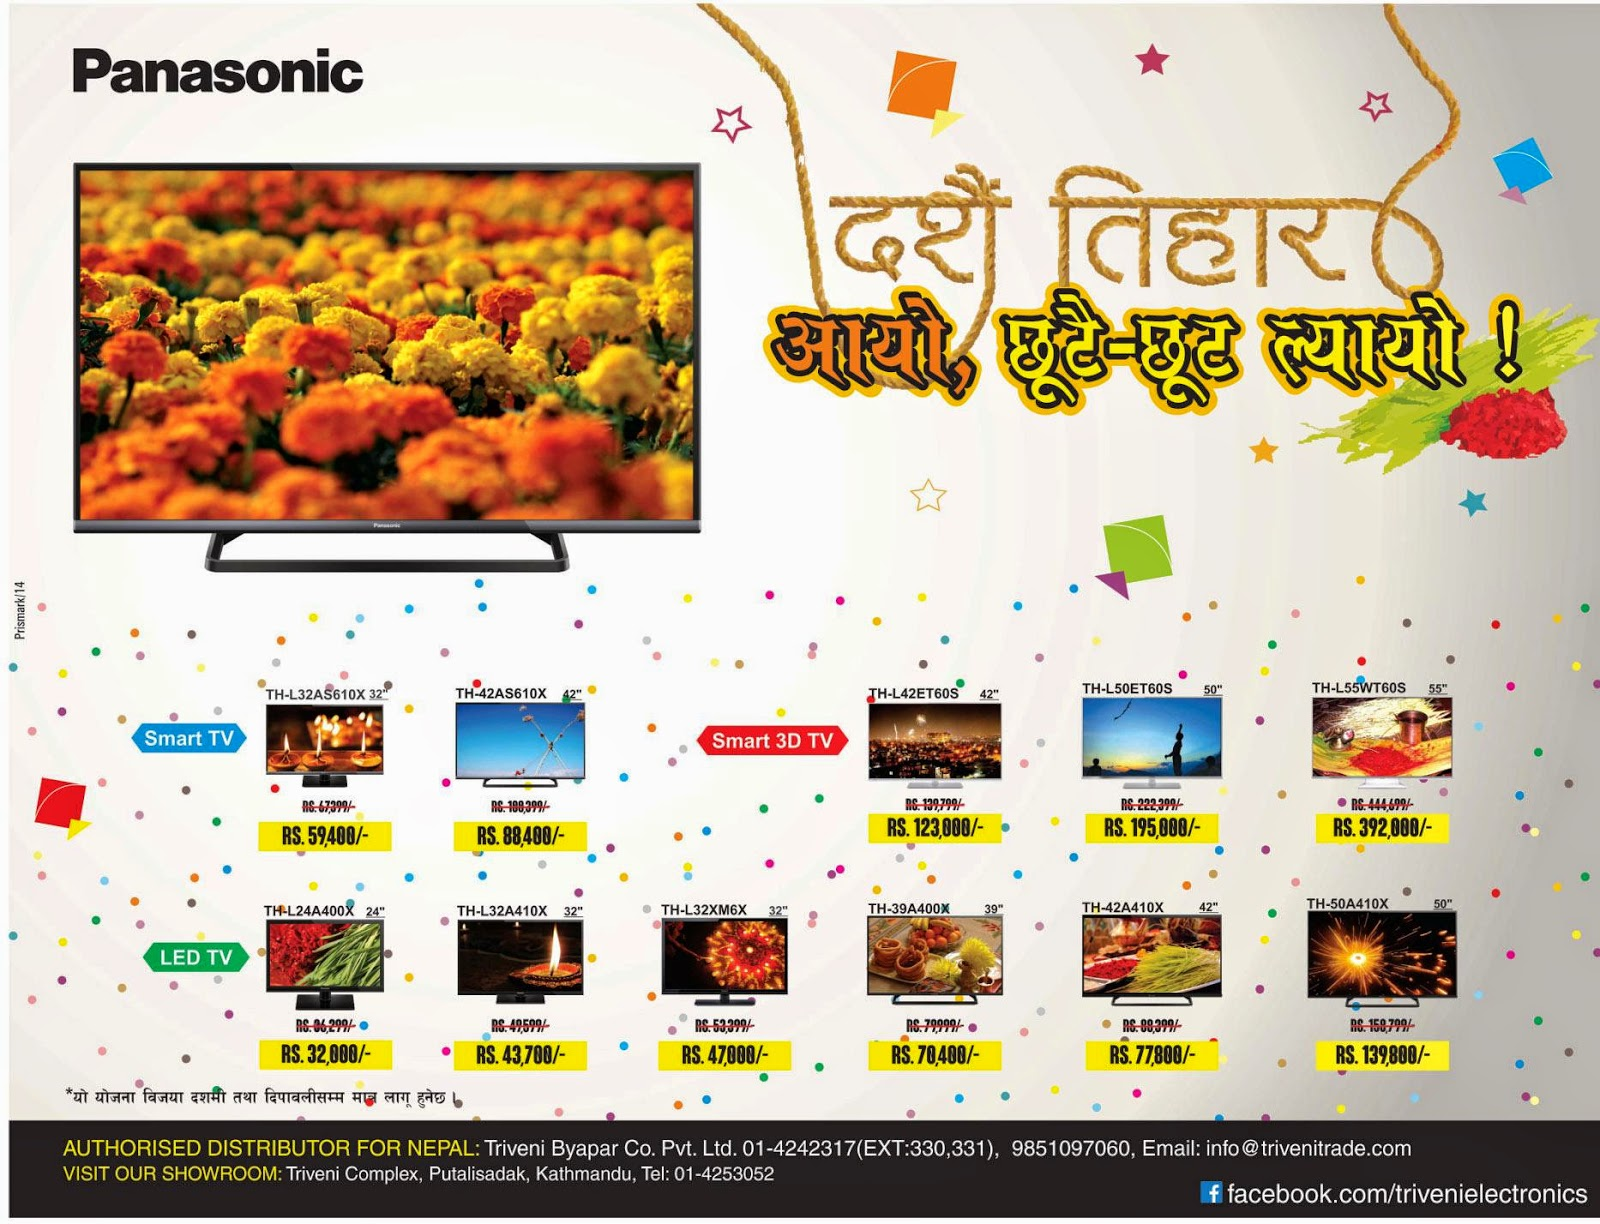 Panasonic Smart TV Price in Nepal